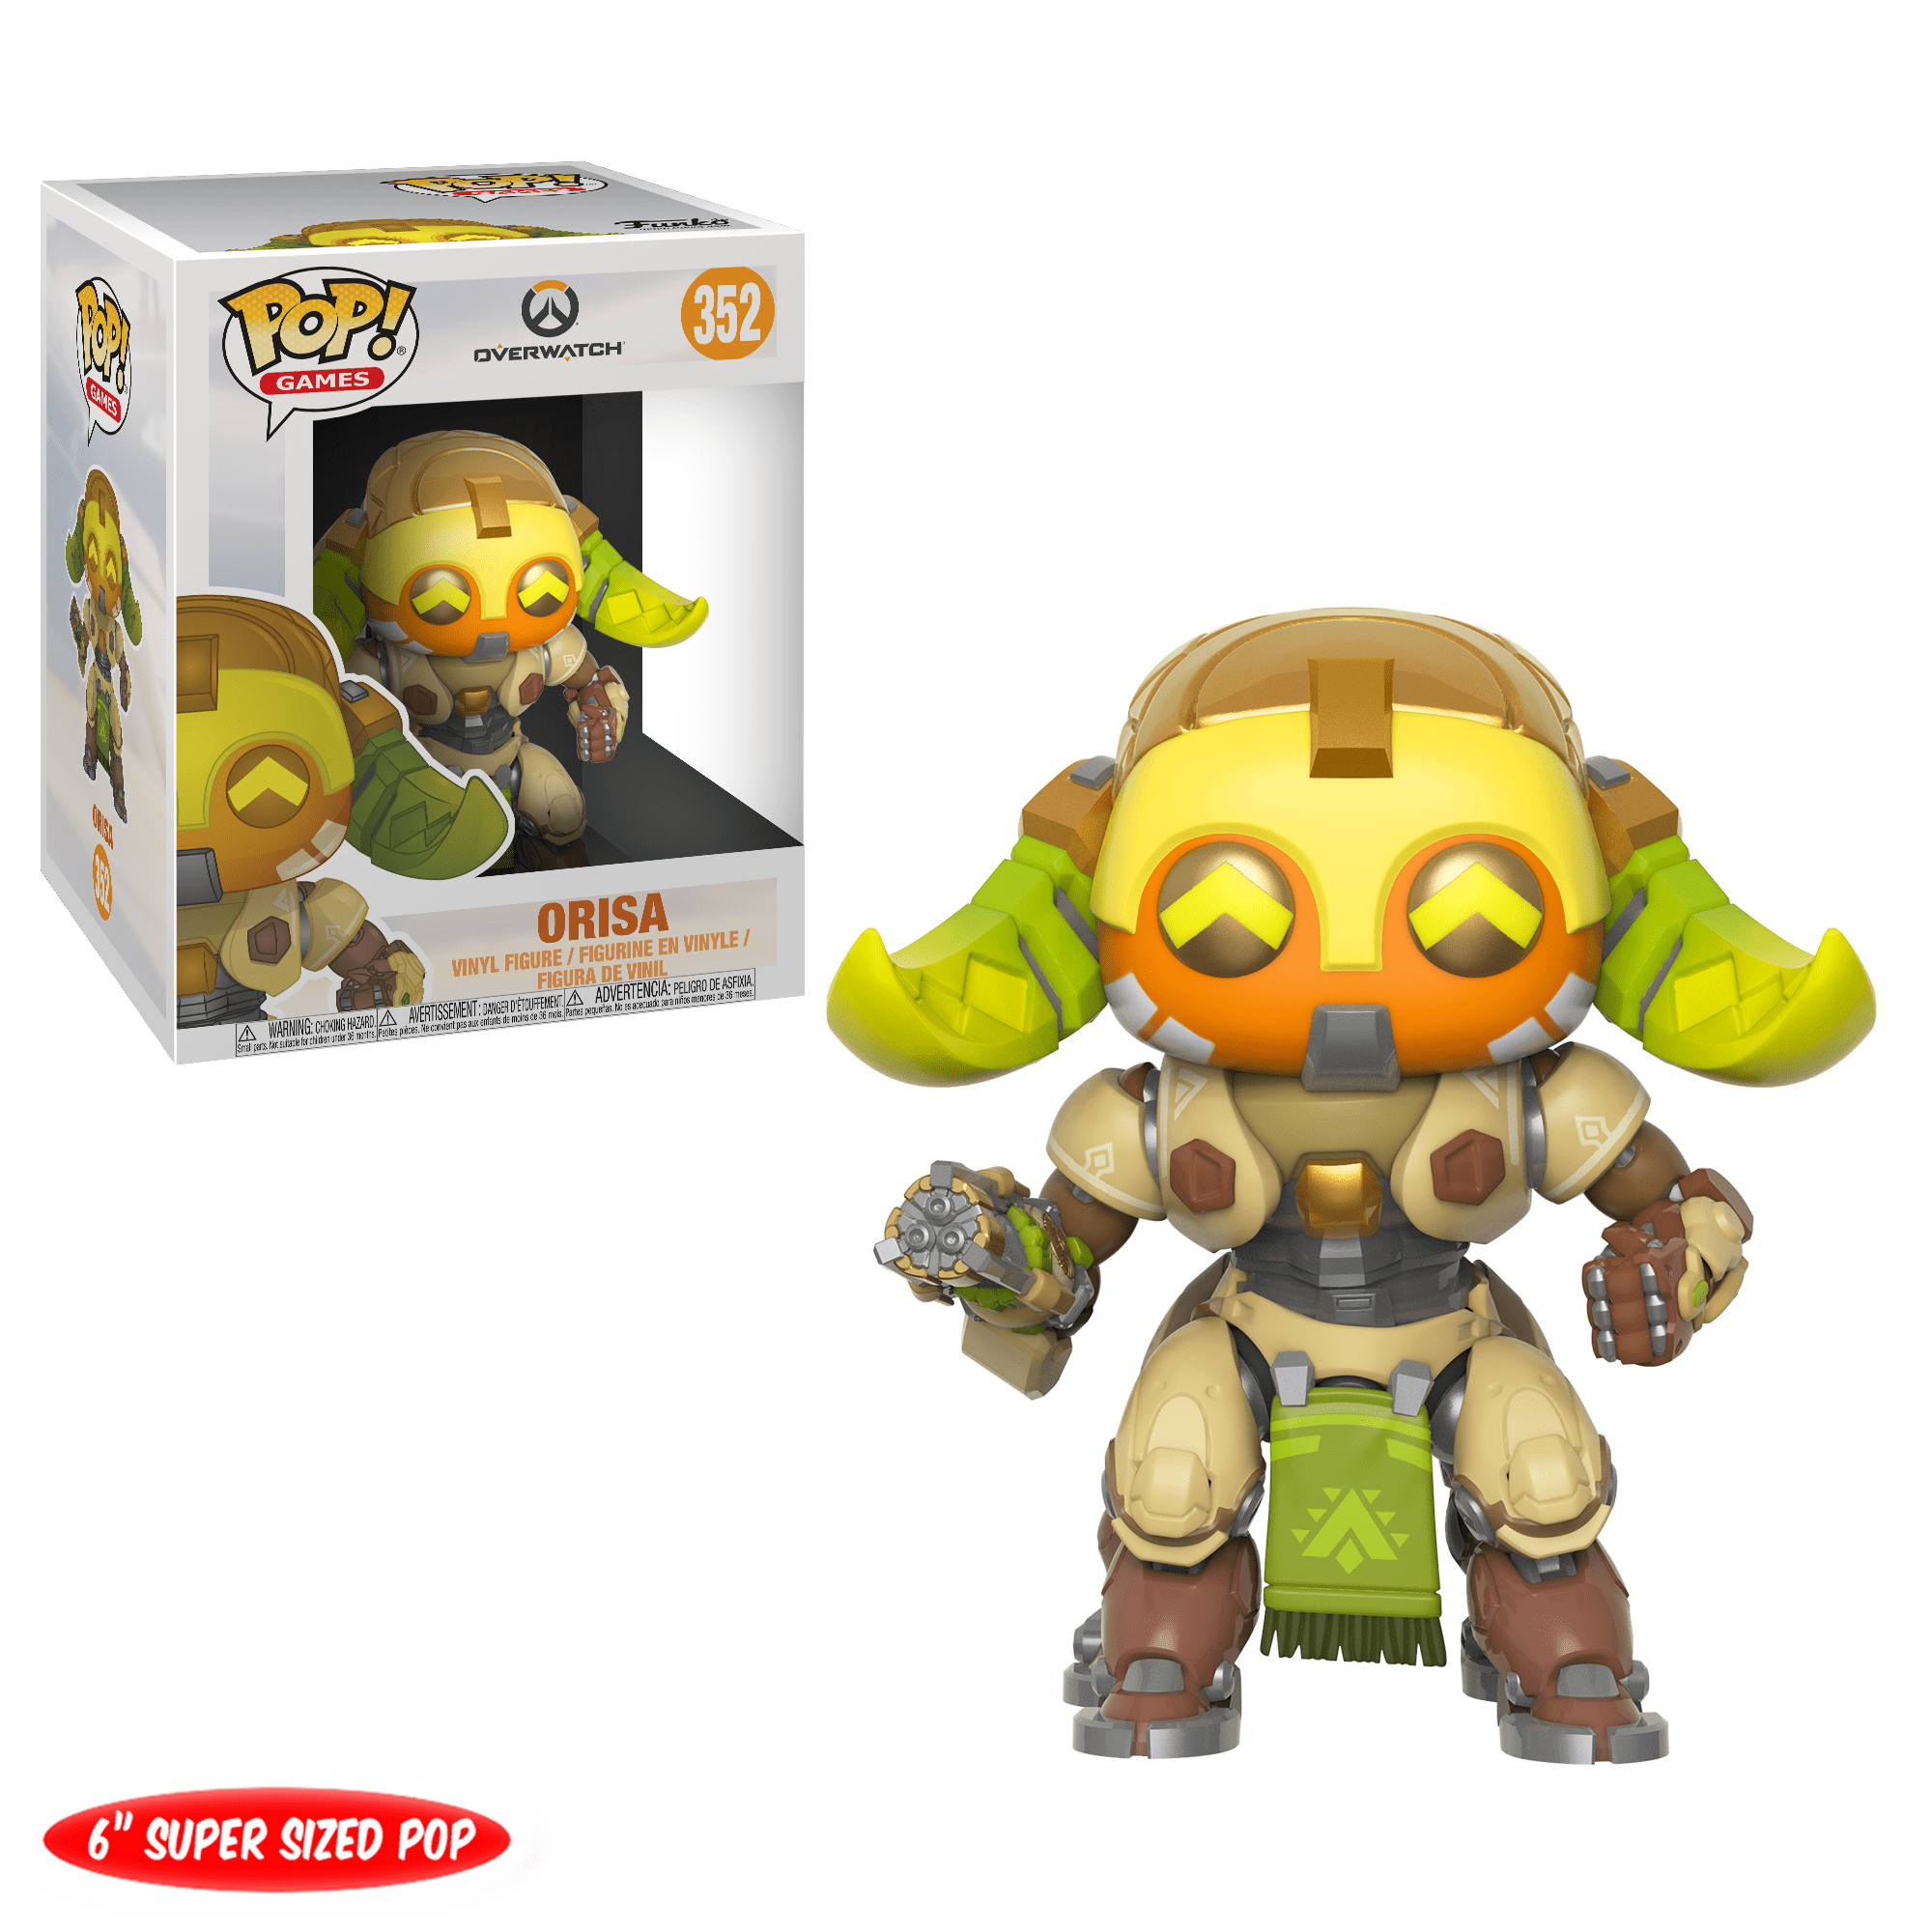 Funko Pop! Games - Overwatch #352 - Orisa (6 inch) - Simply Toys